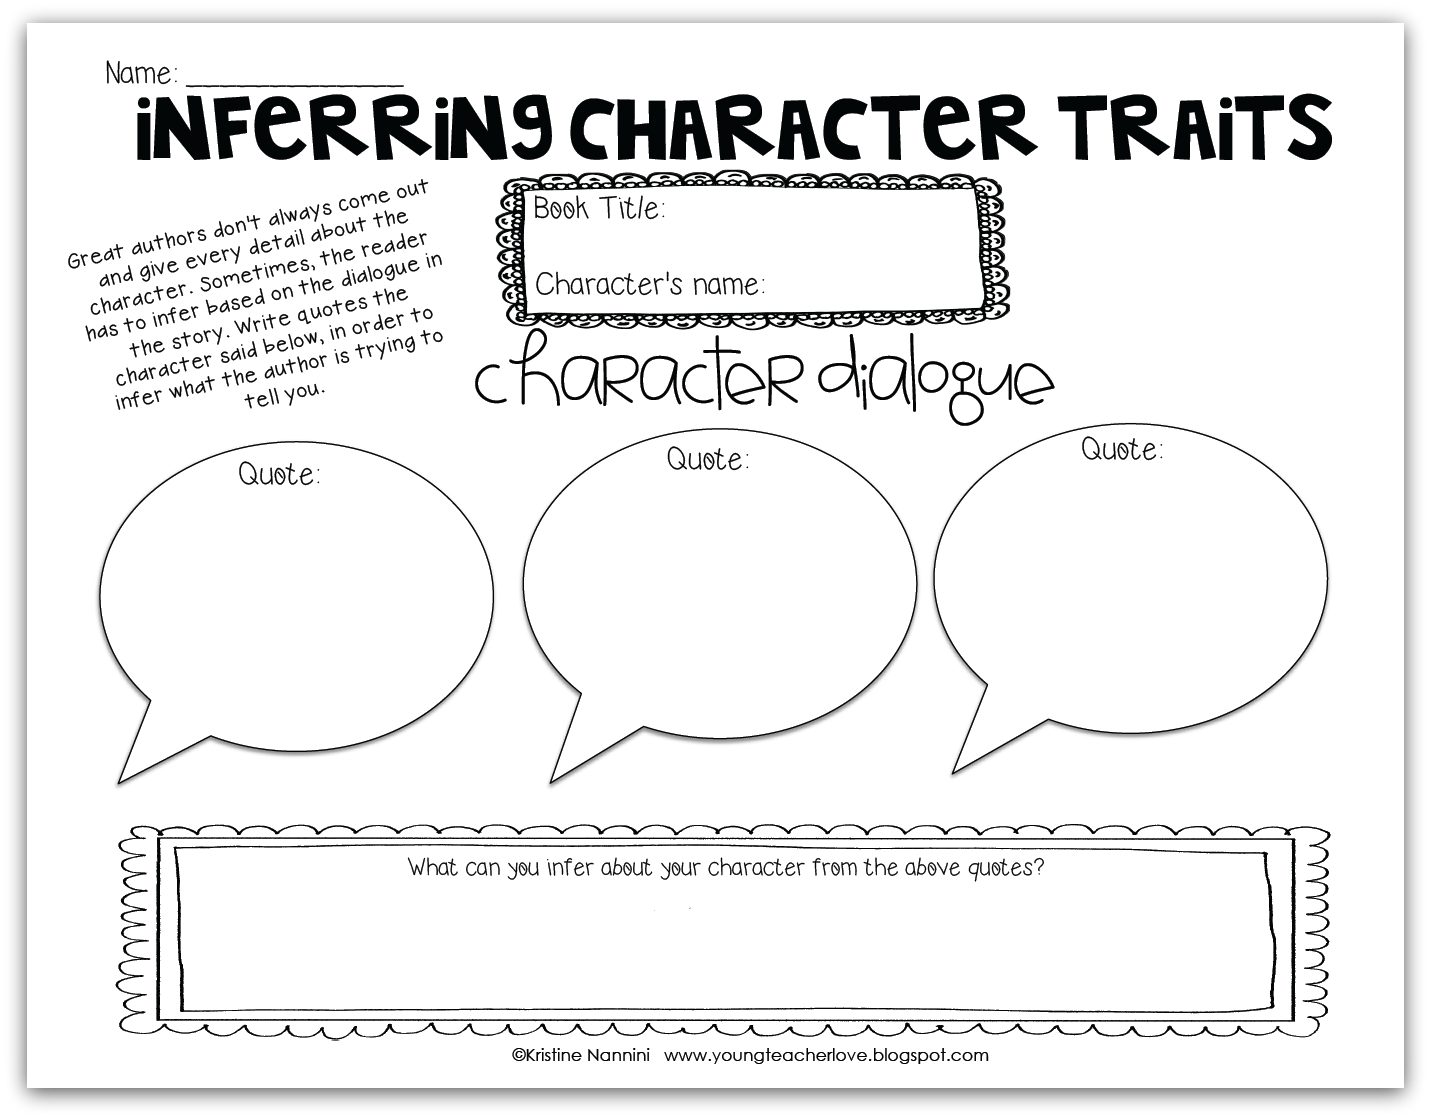 Inferring Character Traits Through Dialogue Plus A Free Graphic Organizer